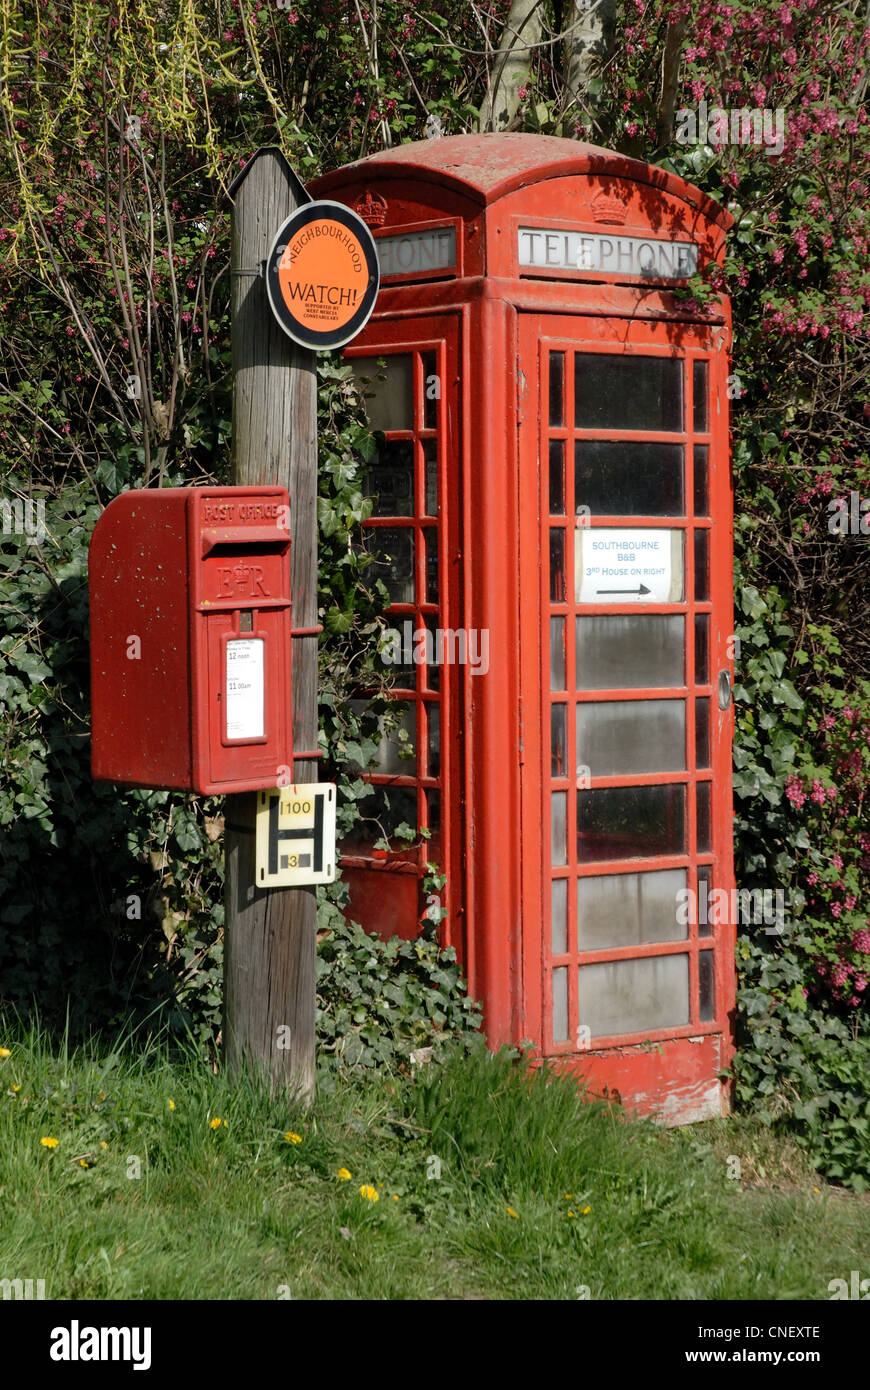 A post and telephone box taken in Kington, Herefordshire. - Stock Image